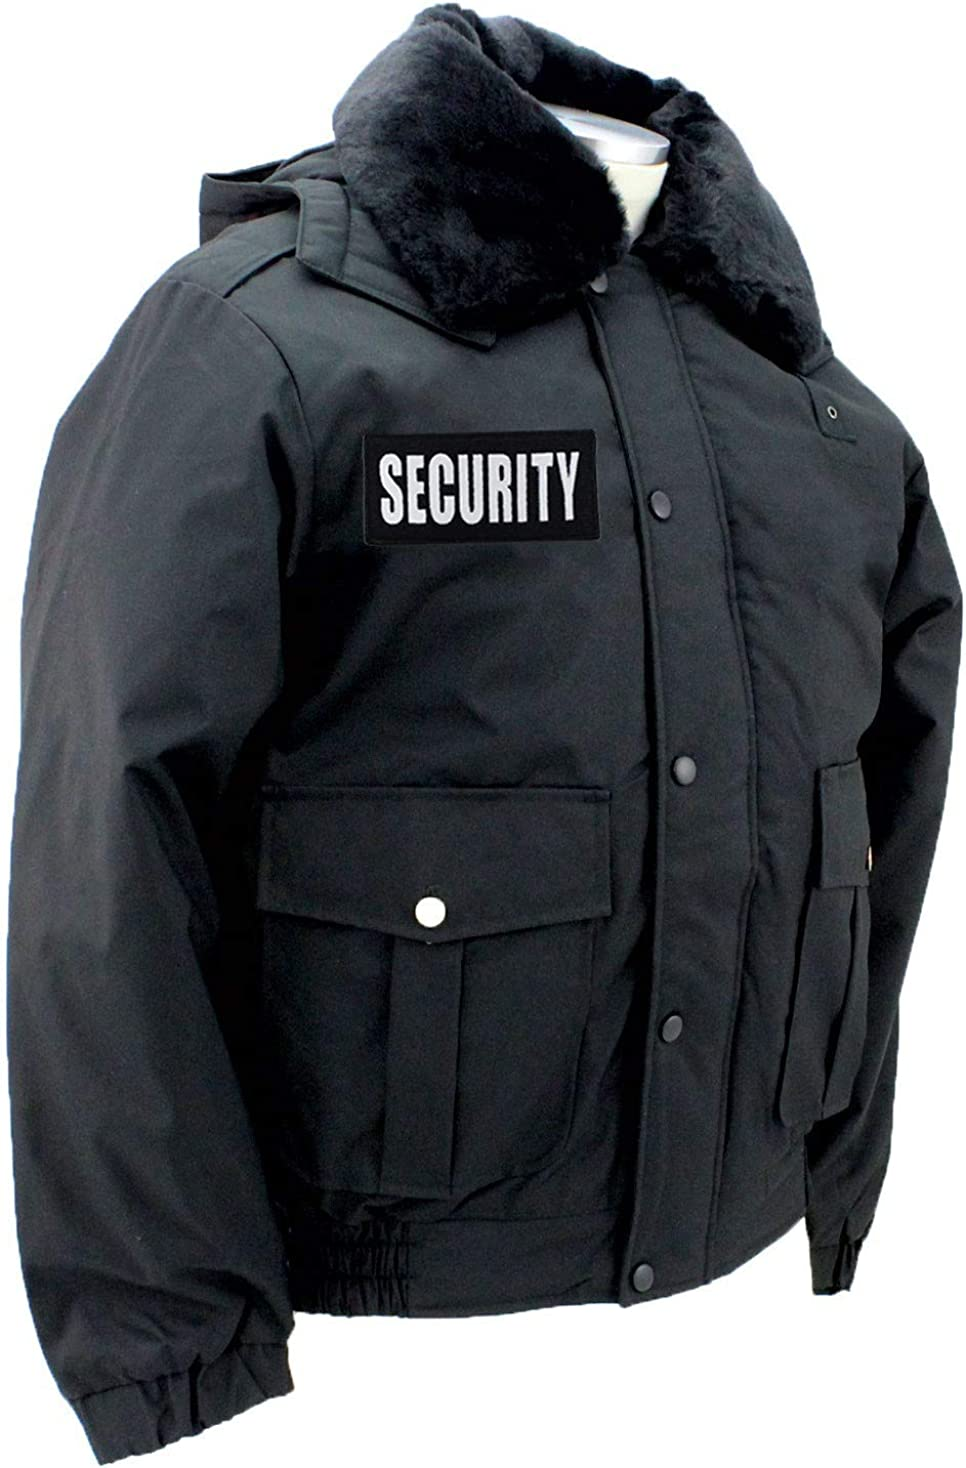 First Class All Season Deluxe Bomber Jacket with Reflective Security ID